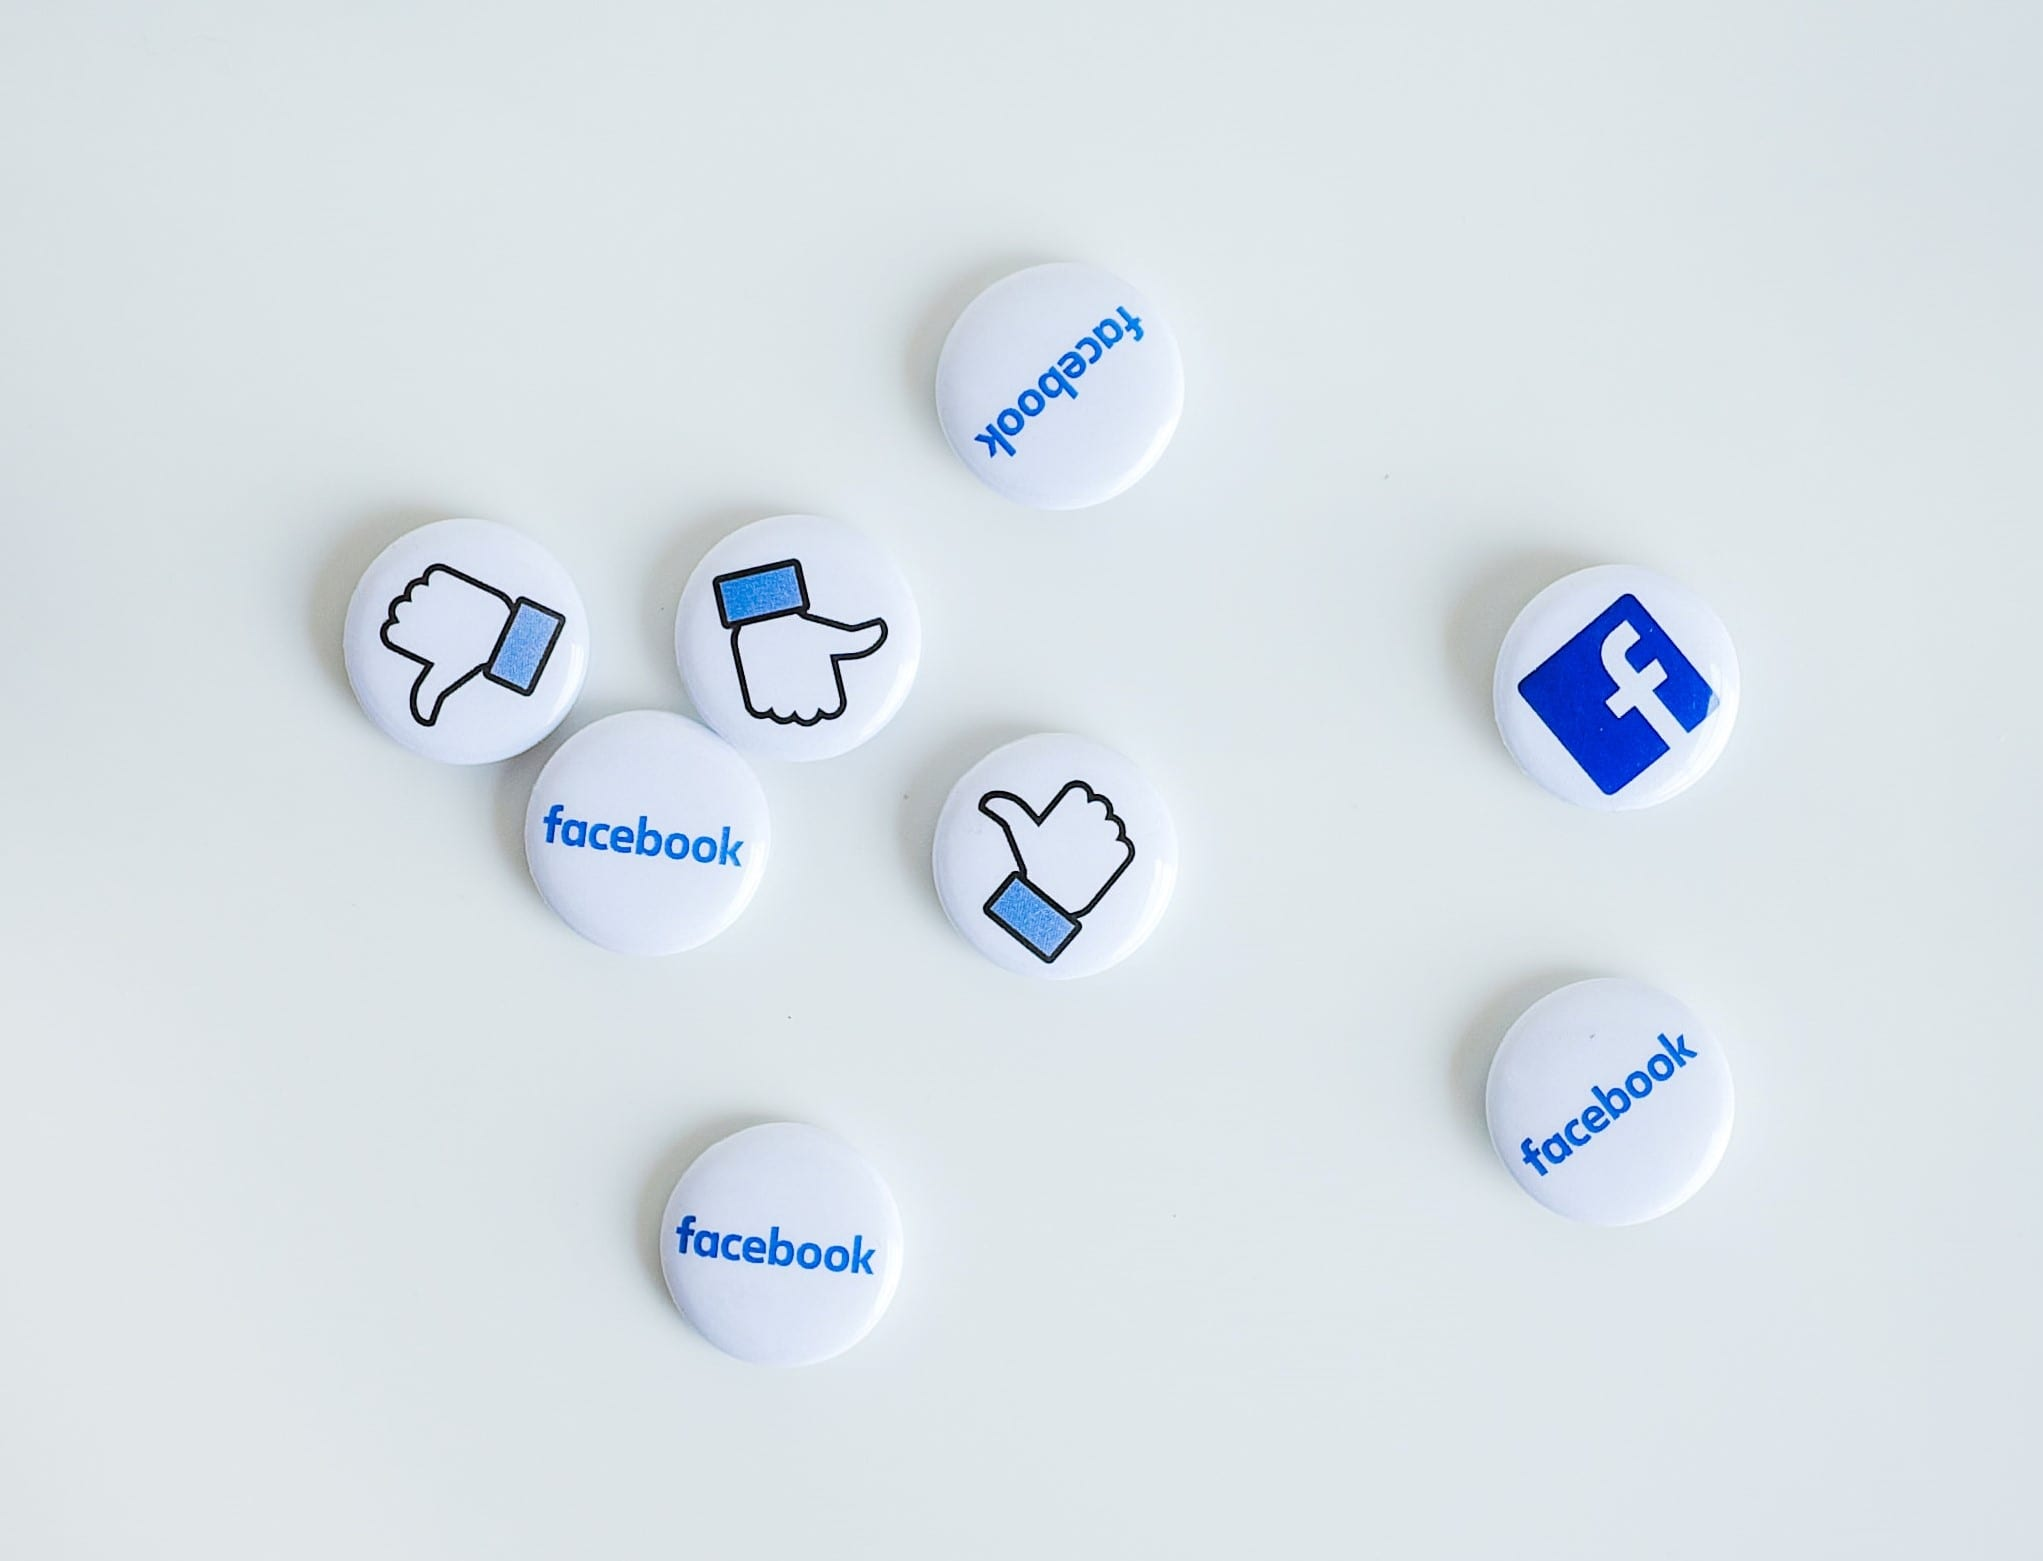 Magnets with the Facebook logo and Facebook thumbs up